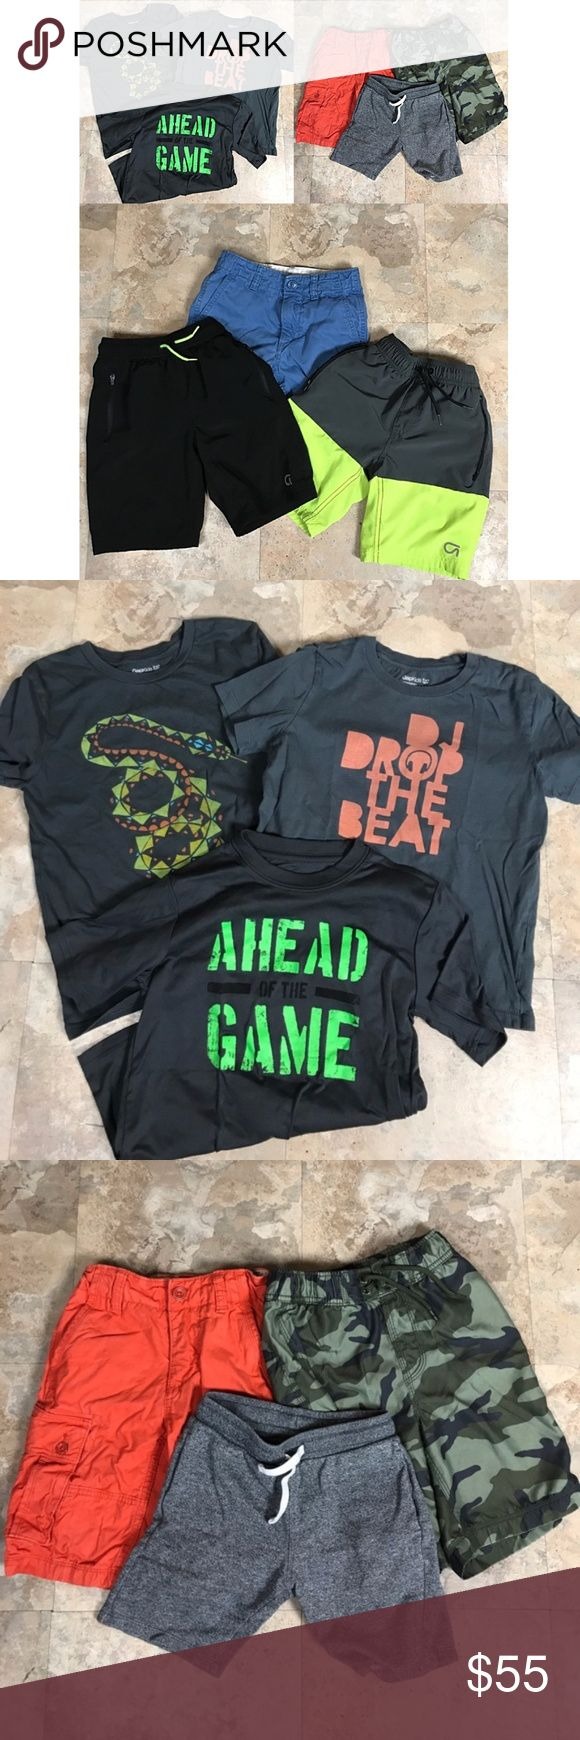 "Boys 12pc Bundle (6-7) Small Gap HM Umbro Boys (6-7) Tee 12pc Bundle (10 Gap, 1 HM Short, 1 Umbro Tee) // Gap DJ shirt has a tiny snag as pictured - it was a favorite and too cute to toss out - still has lots of play life left. Ahead of the Game ""Umbro"" Tee is like New. Gap Snake Tee is EUC. Camo Gap Swim Trunks, 2 Quick Dry Gap Shorts, Gap Blue Chinos, Gap Orange Cargo Chinos. Gap Sleep 3pc Bundle Size 6 // Matching Fleecey Navy set & Wolf Sleep Shirt (my son won't let go of the matching…"